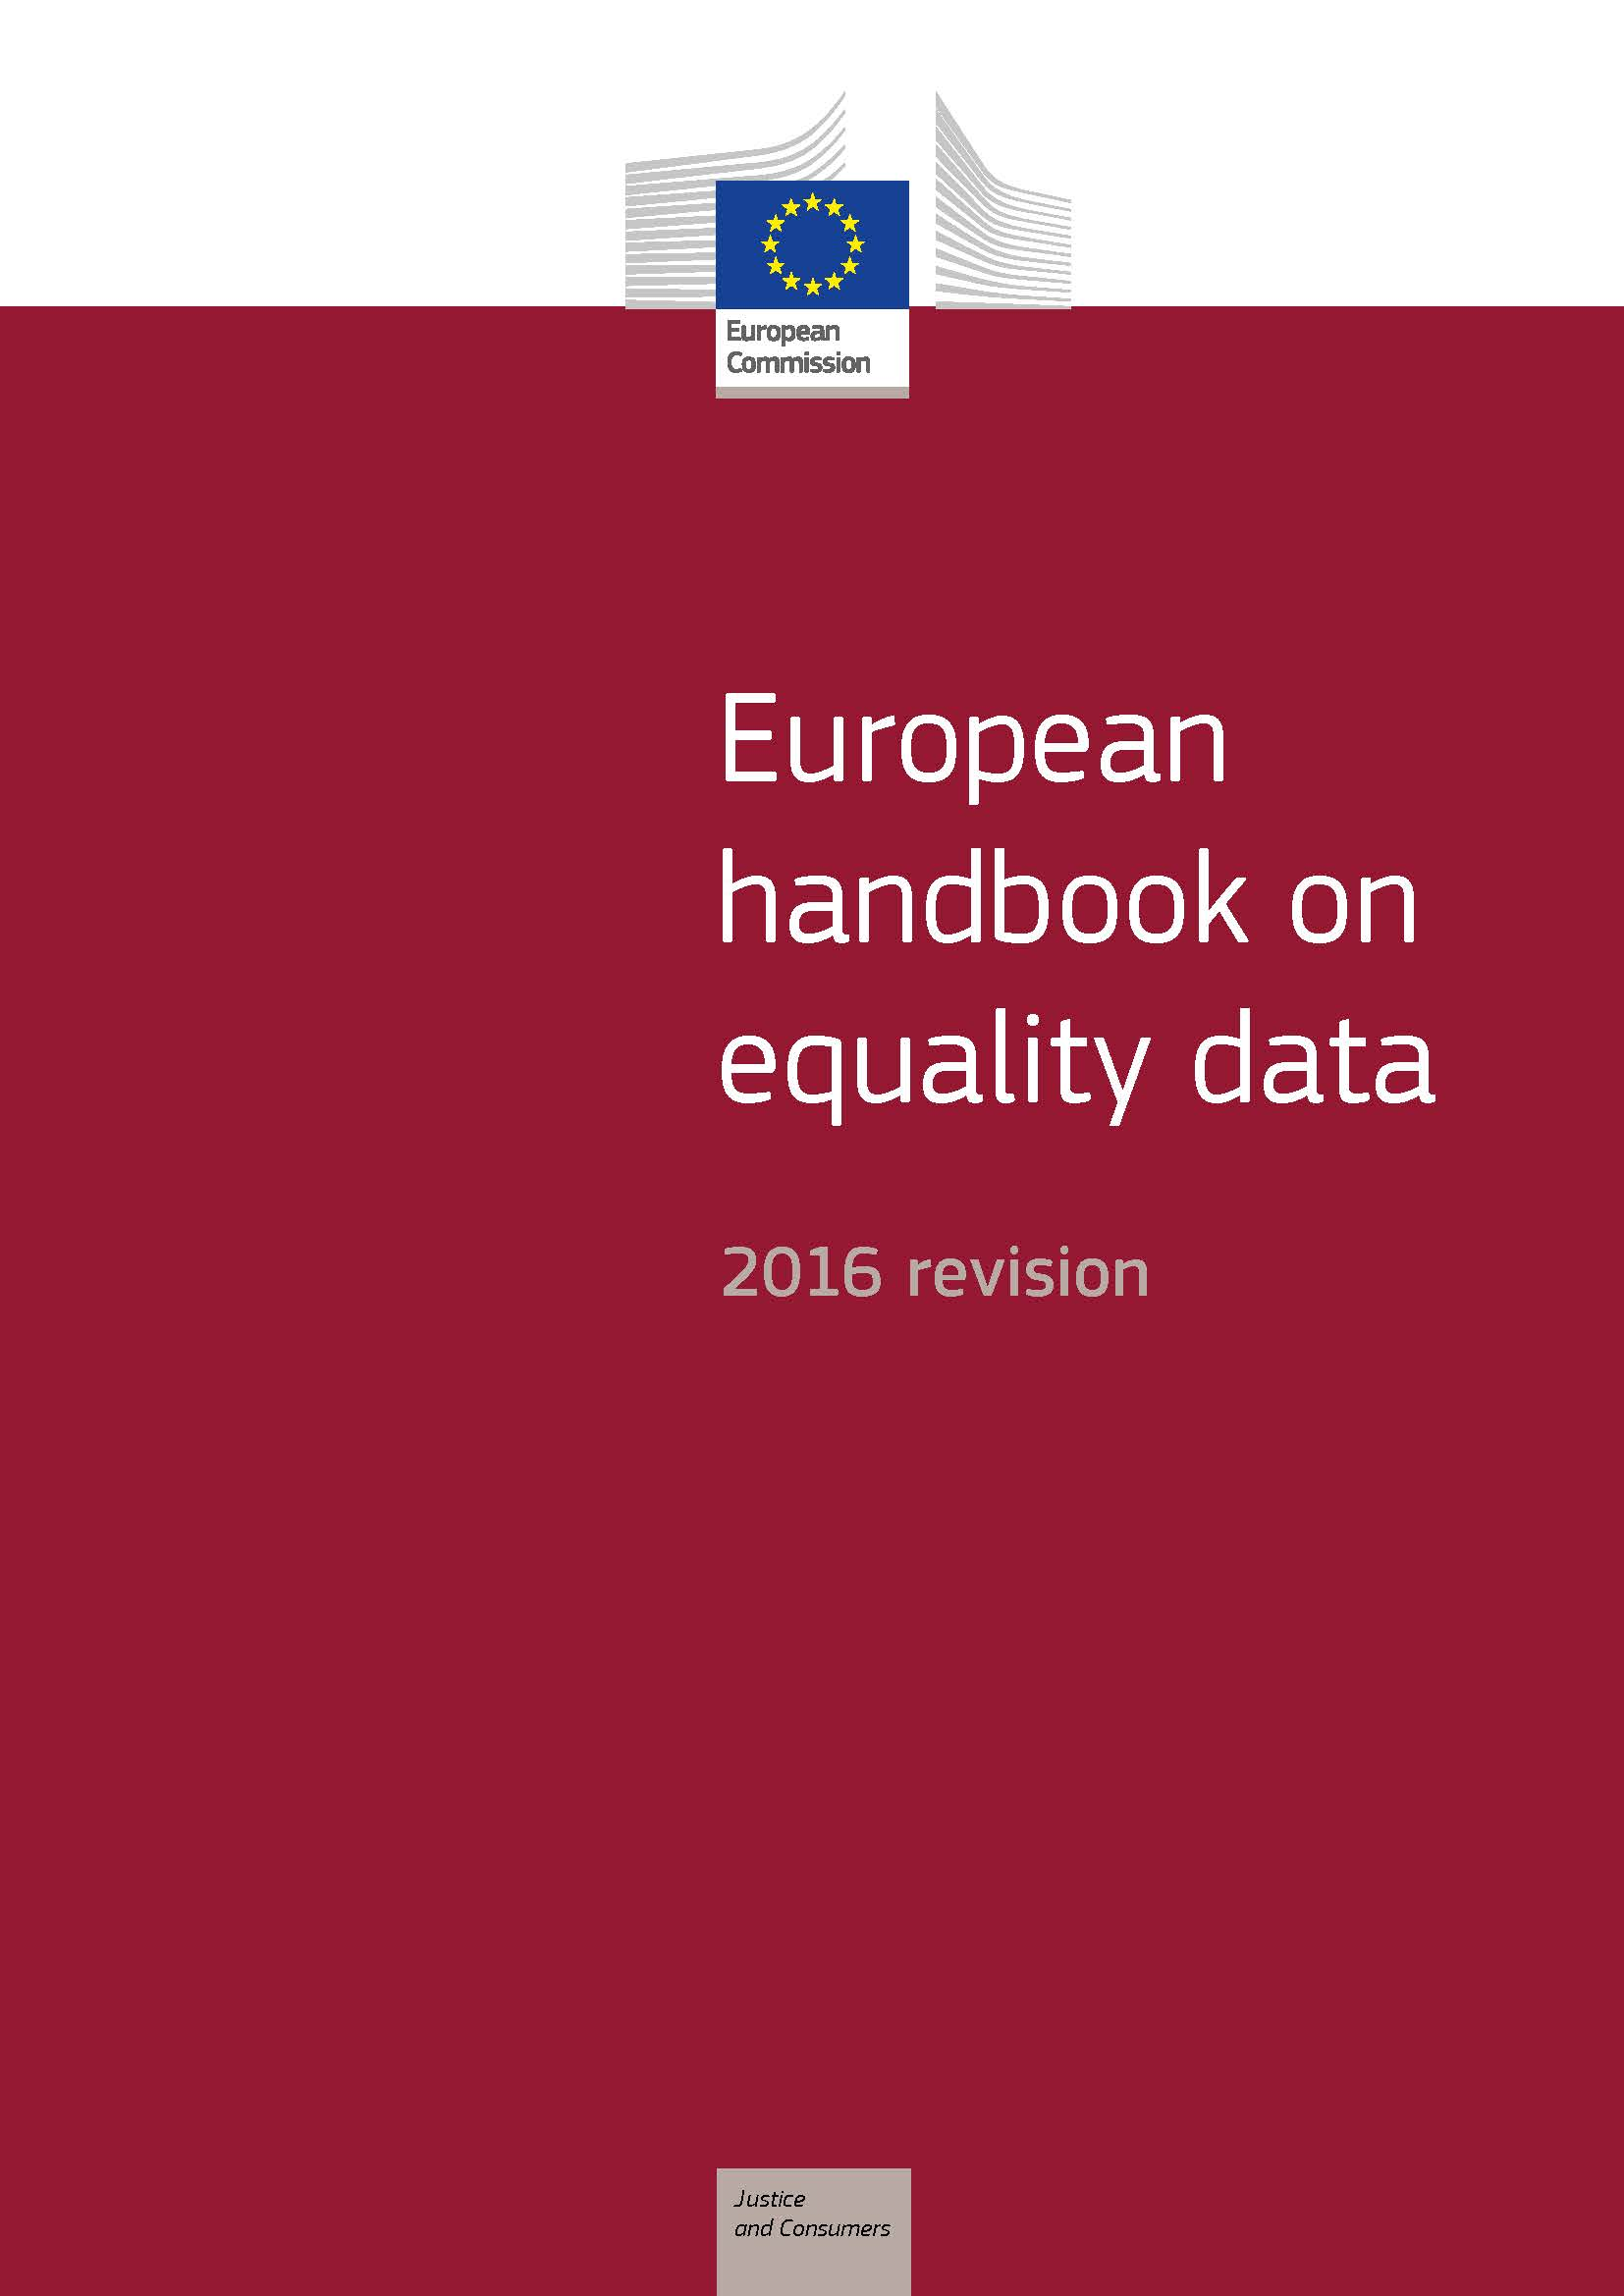 European handbook on equality data - 2016 revision (PDF 995 kB)